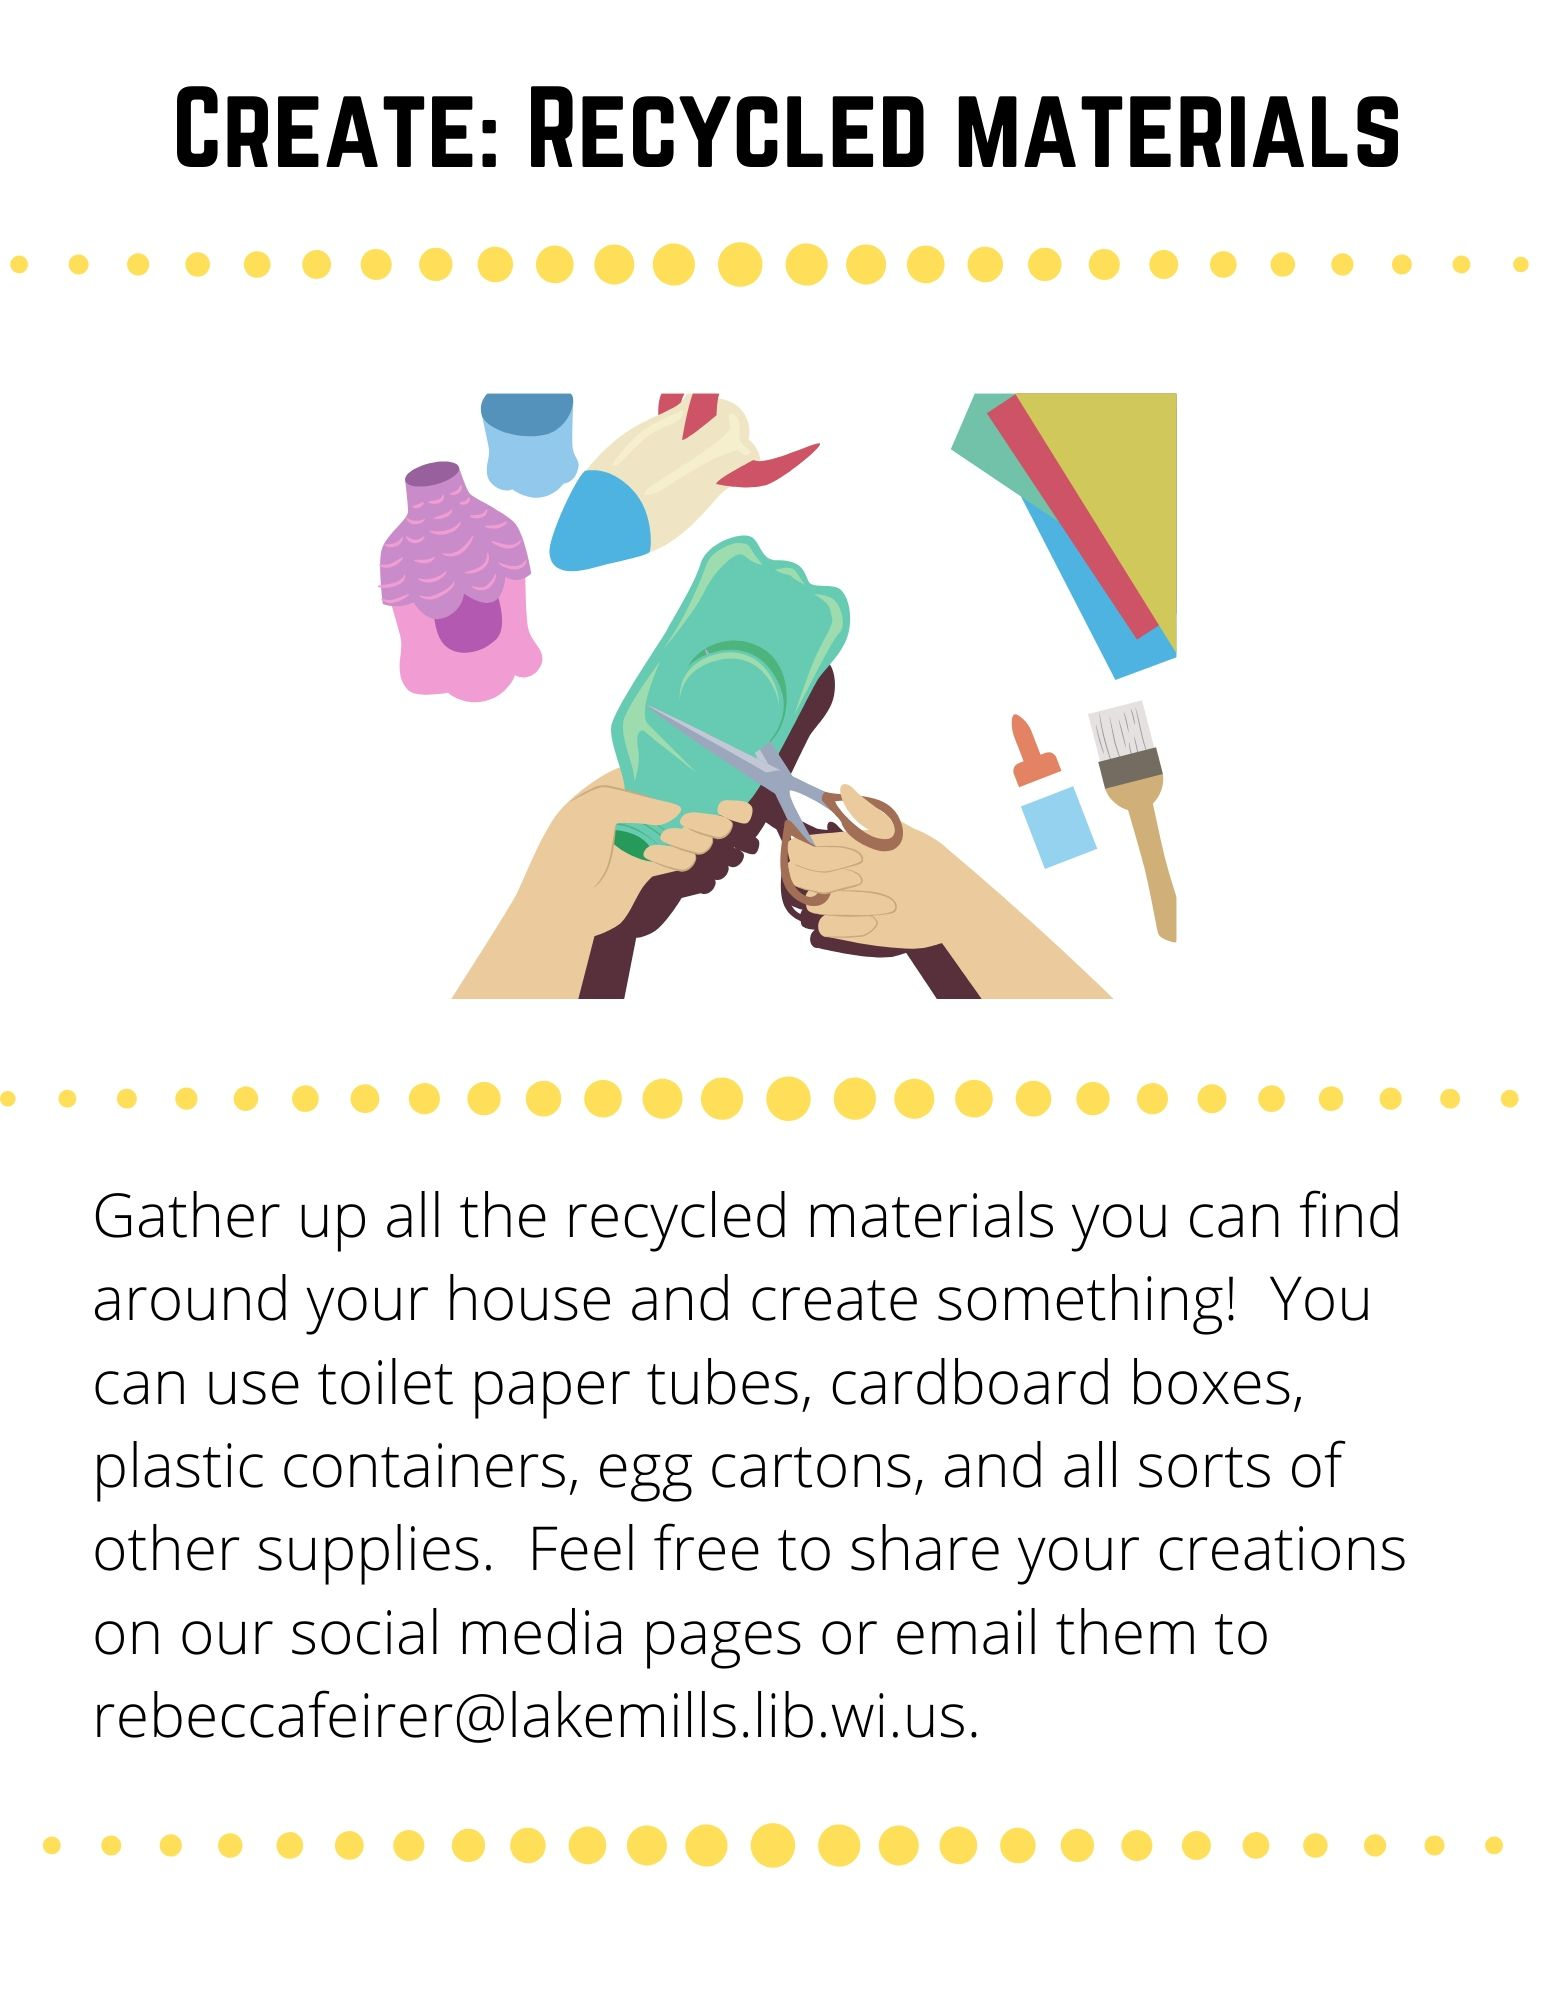 Gather up all the recycled materials you can find around your house and create something!  You can use toilet paper tubes, cardboard boxes, plastic containers, egg cartons, and all sorts of other supplies.  Feel free to share your creations on our social media pages or email them to rebeccafeirer@lakemills.lib.wi.us.